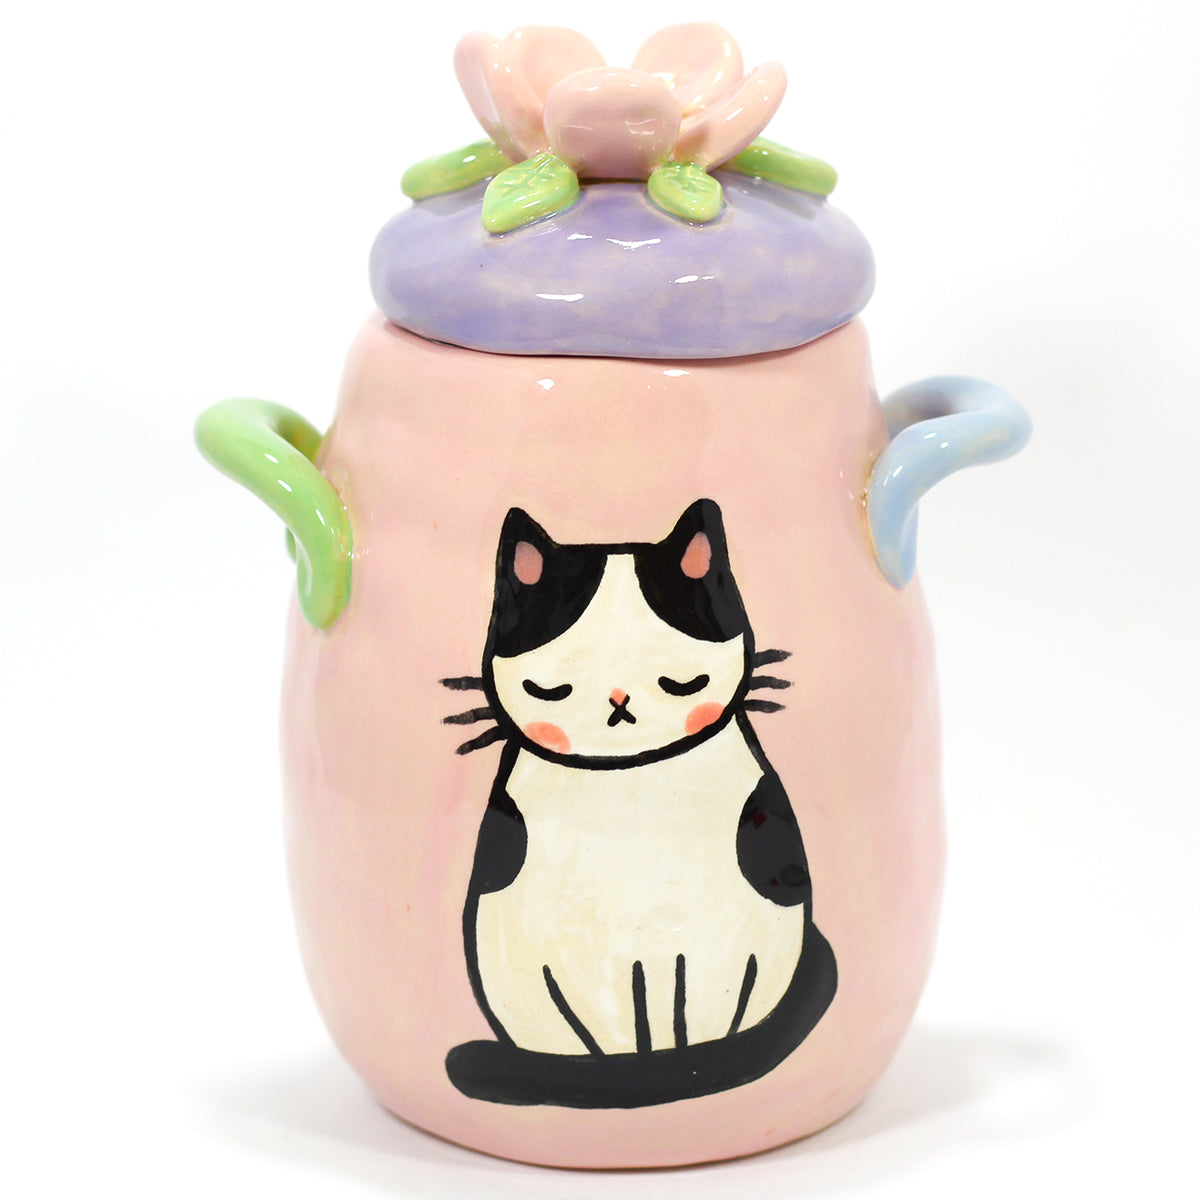 Ceramic Kitty Planter #1148 - M